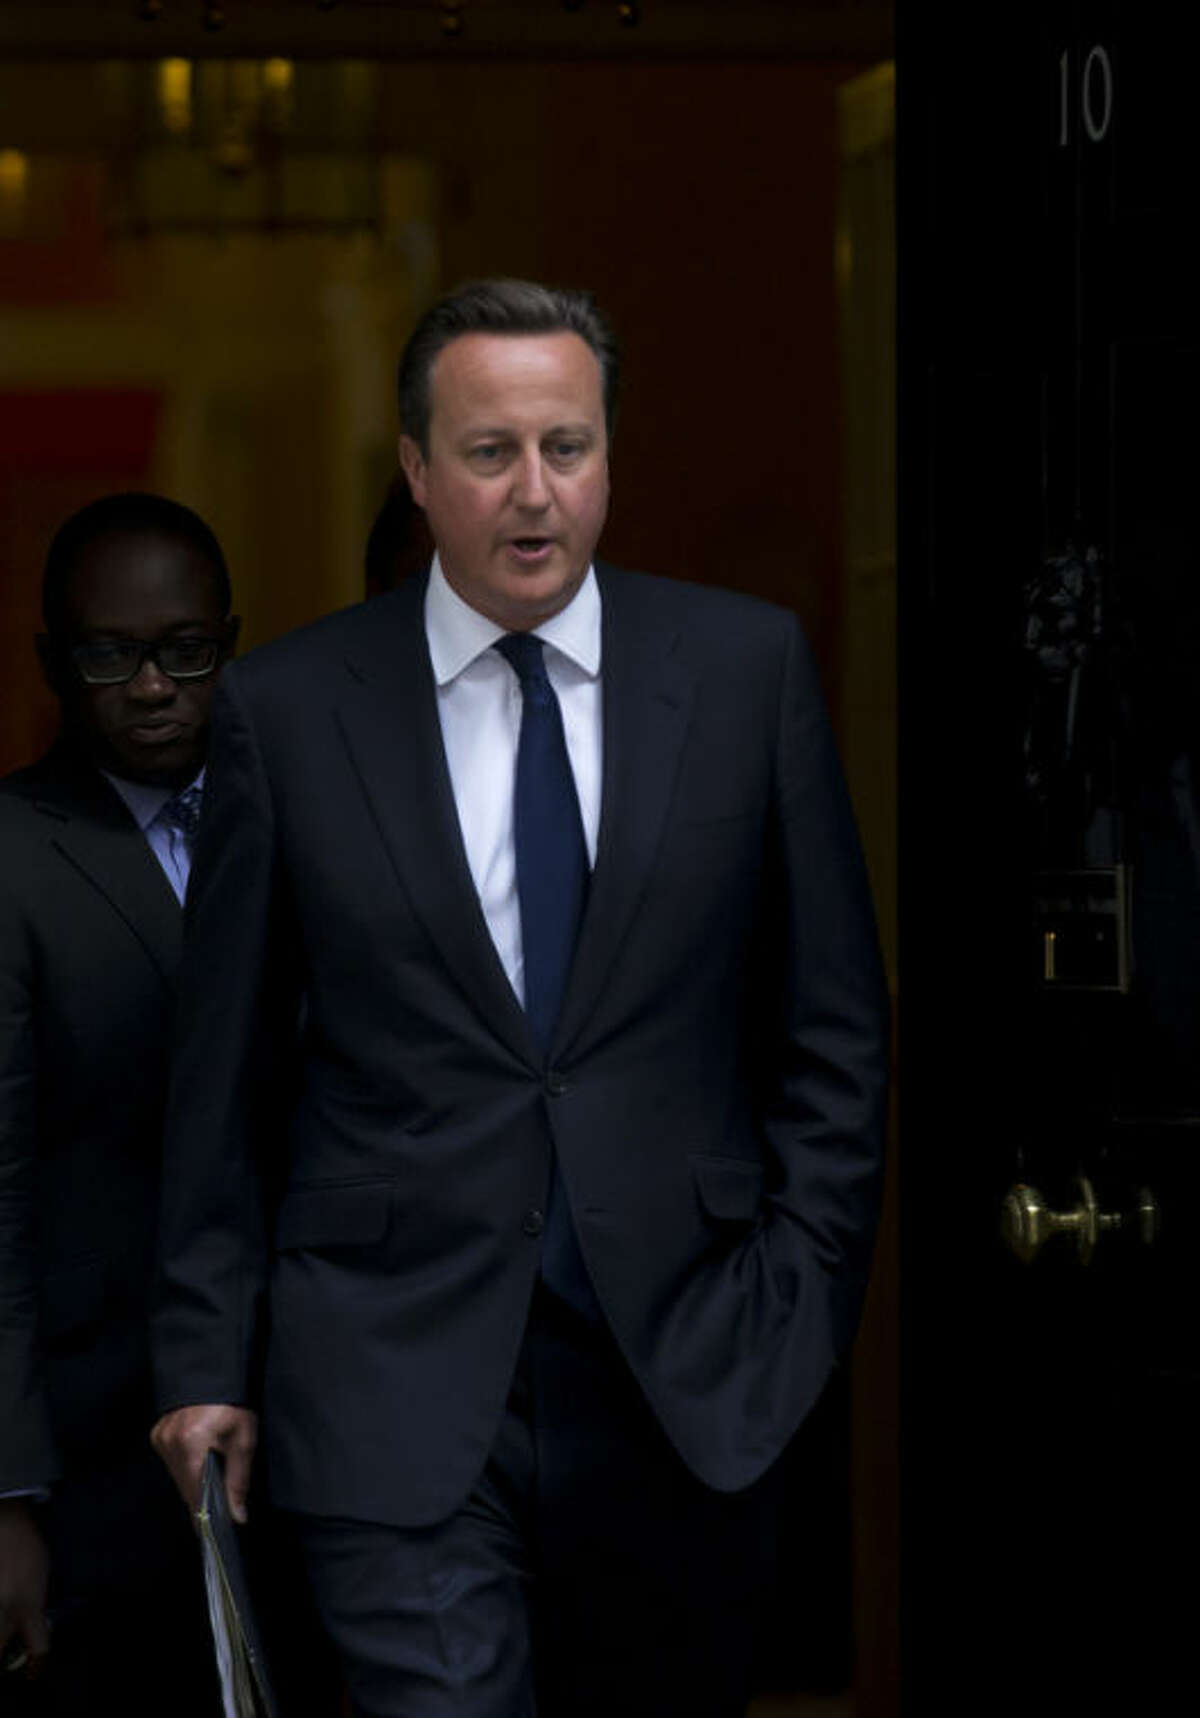 Britain's Prime Minister David Cameron leaves 10 Downing Street in London, to be driven to the Houses of Parliament for a debate and vote on Syria, Thursday, Aug. 29, 2013. Britain's opposition Labour Party has indicated it may not support even a watered down version of a government resolution on Syria. Labour leader Ed Miliband said Thursday he is unwilling to give Prime Minister David Cameron a